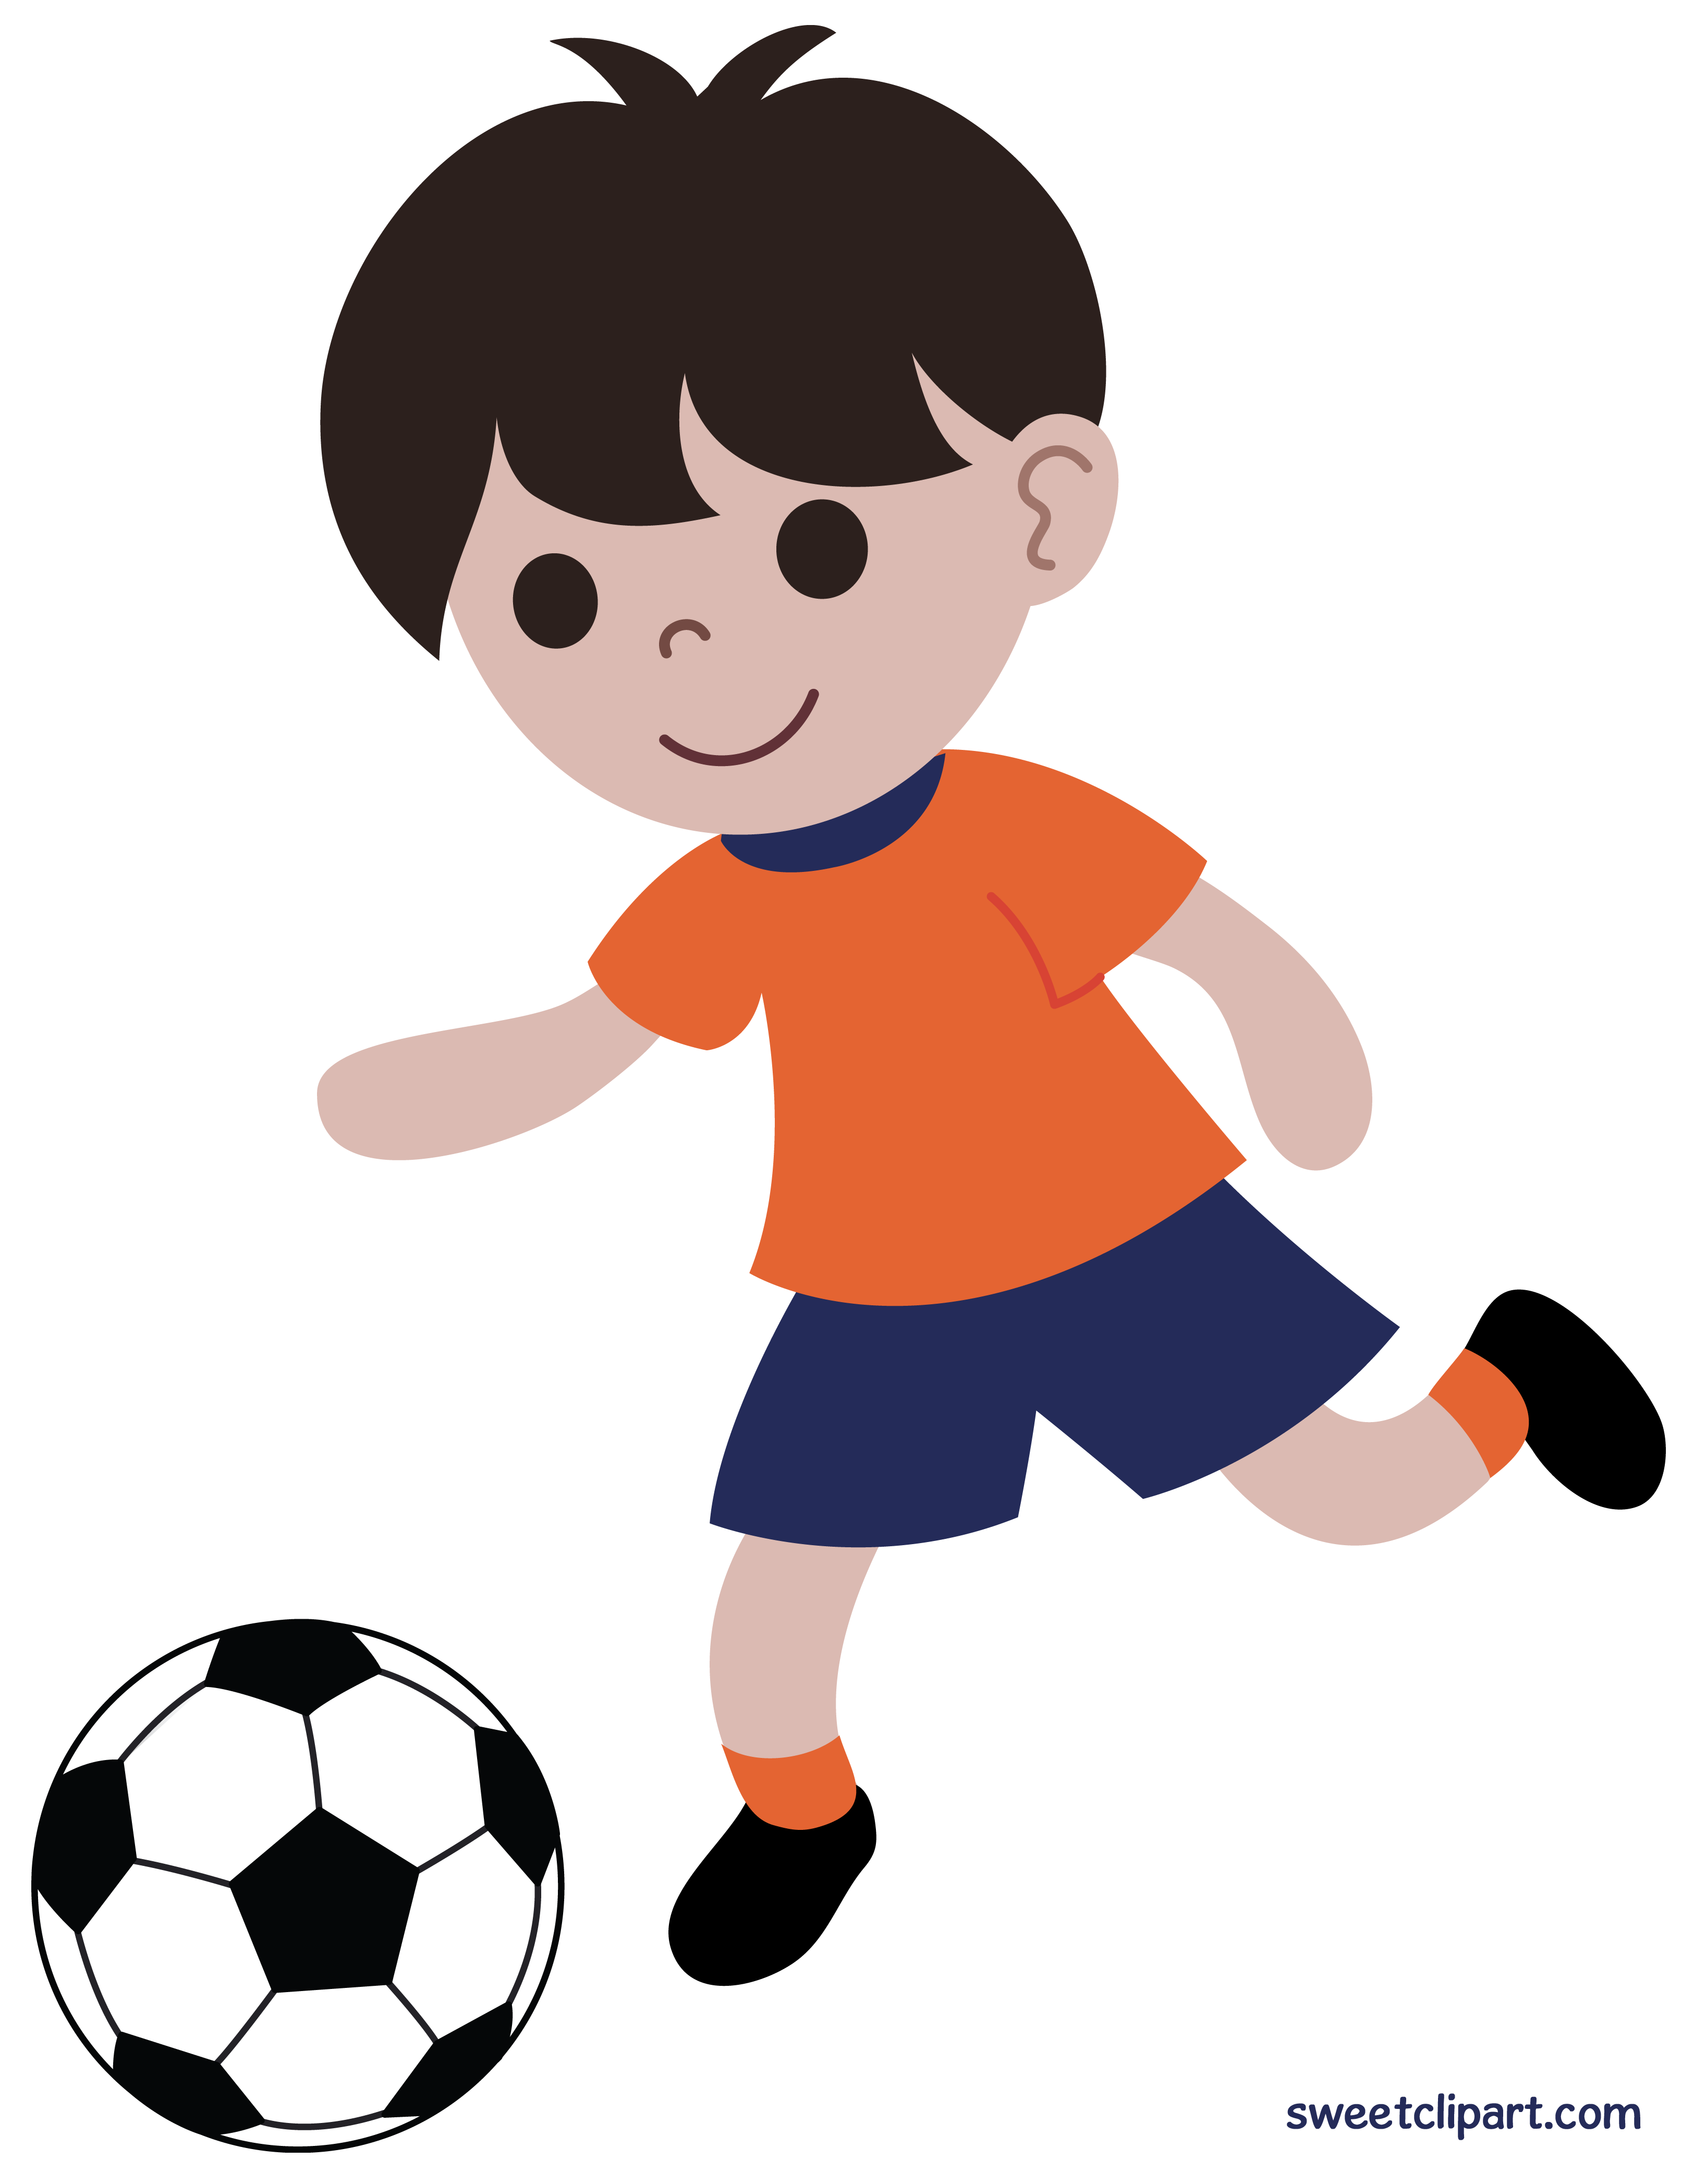 A boy playing basketball with his friends clipart vector free Clipart Play at GetDrawings.com | Free for personal use Clipart Play ... vector free